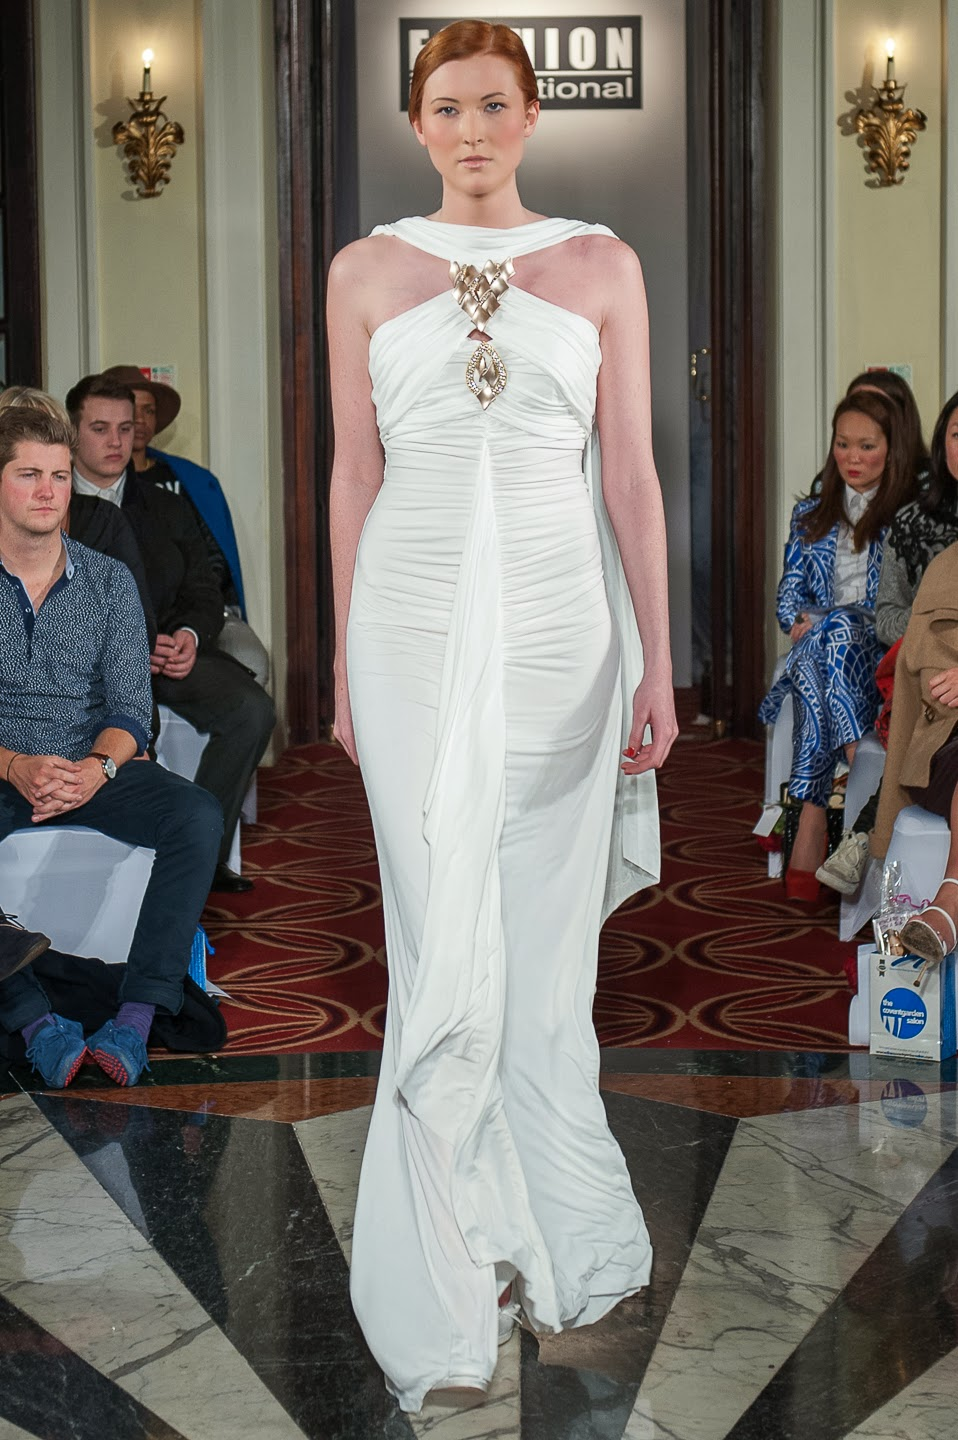 Omar Mansoor LFW A/W '14 - Ivory full length gown